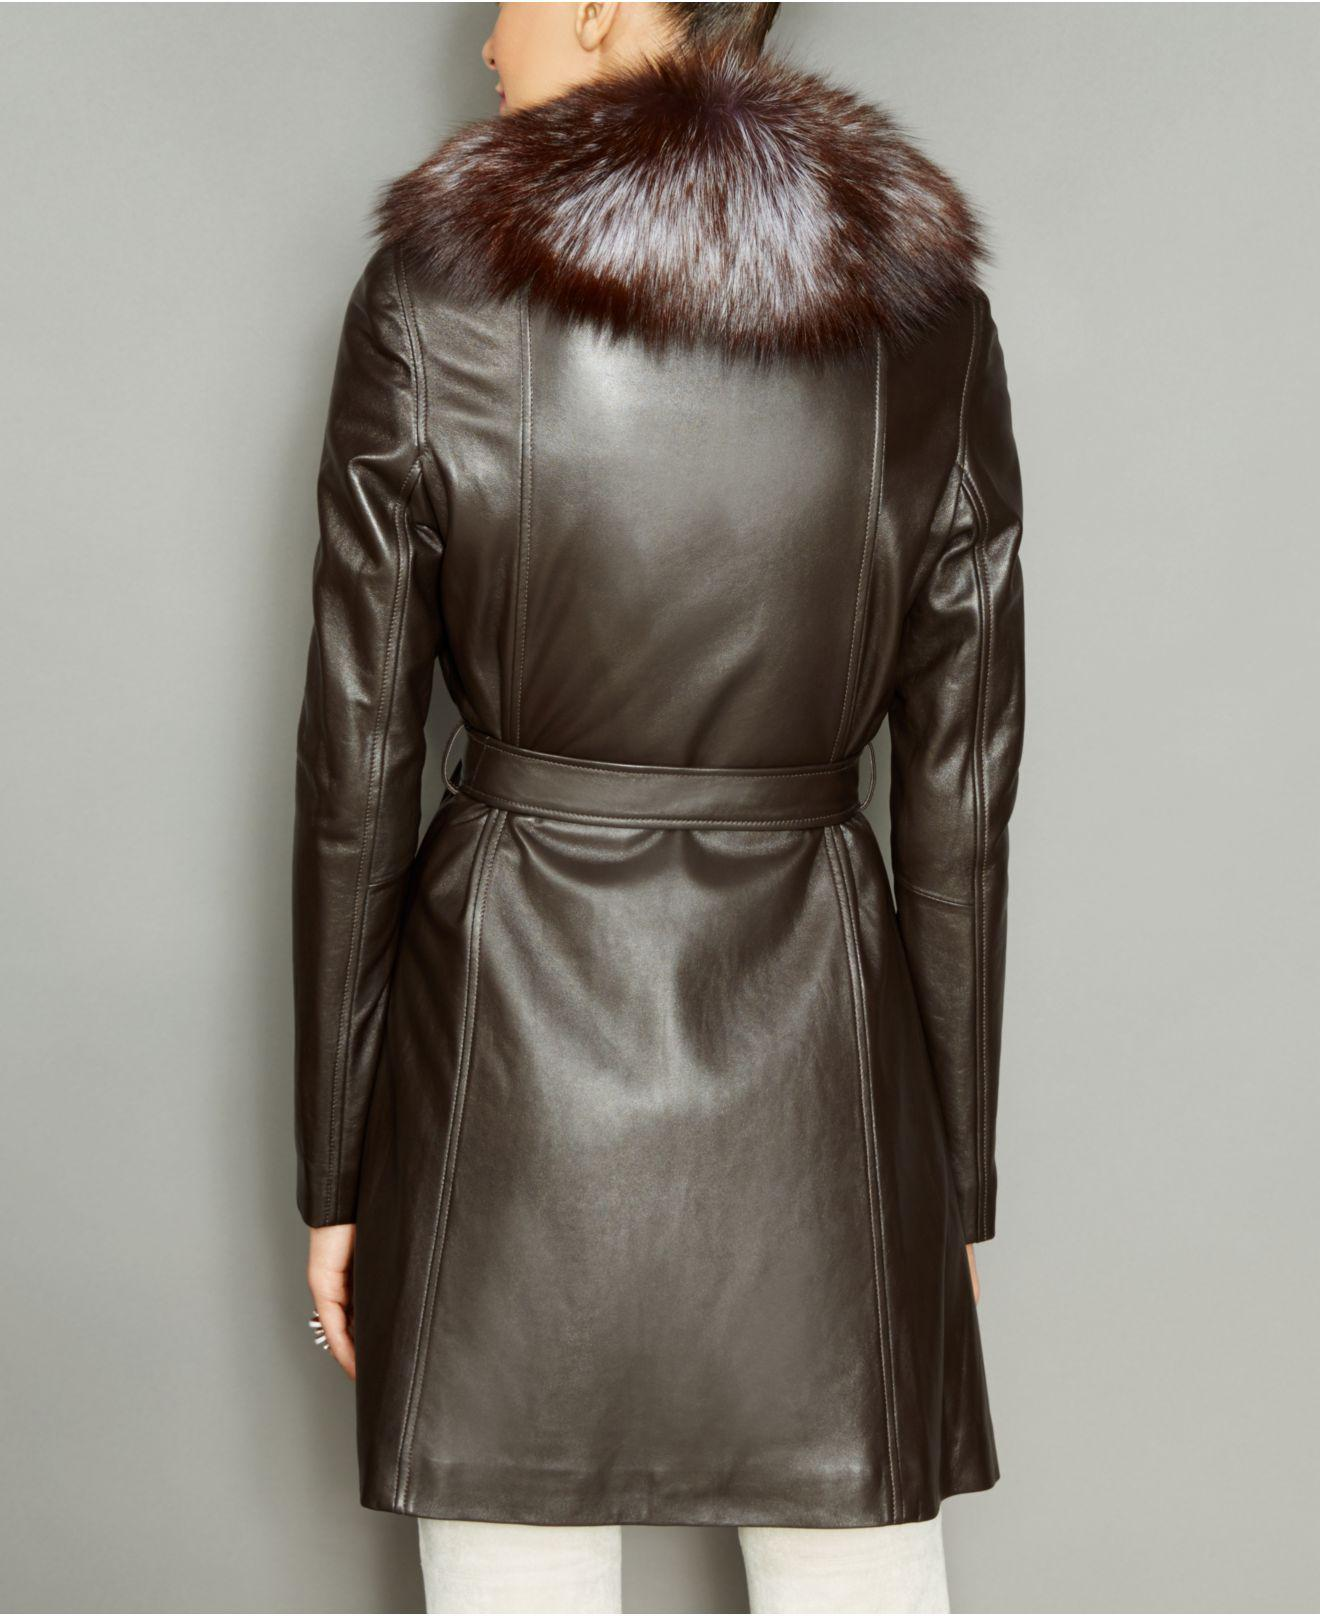 a1e27538df3 Lyst - The Fur Vault Fox-fur-collar Belted Leather Coat in Brown